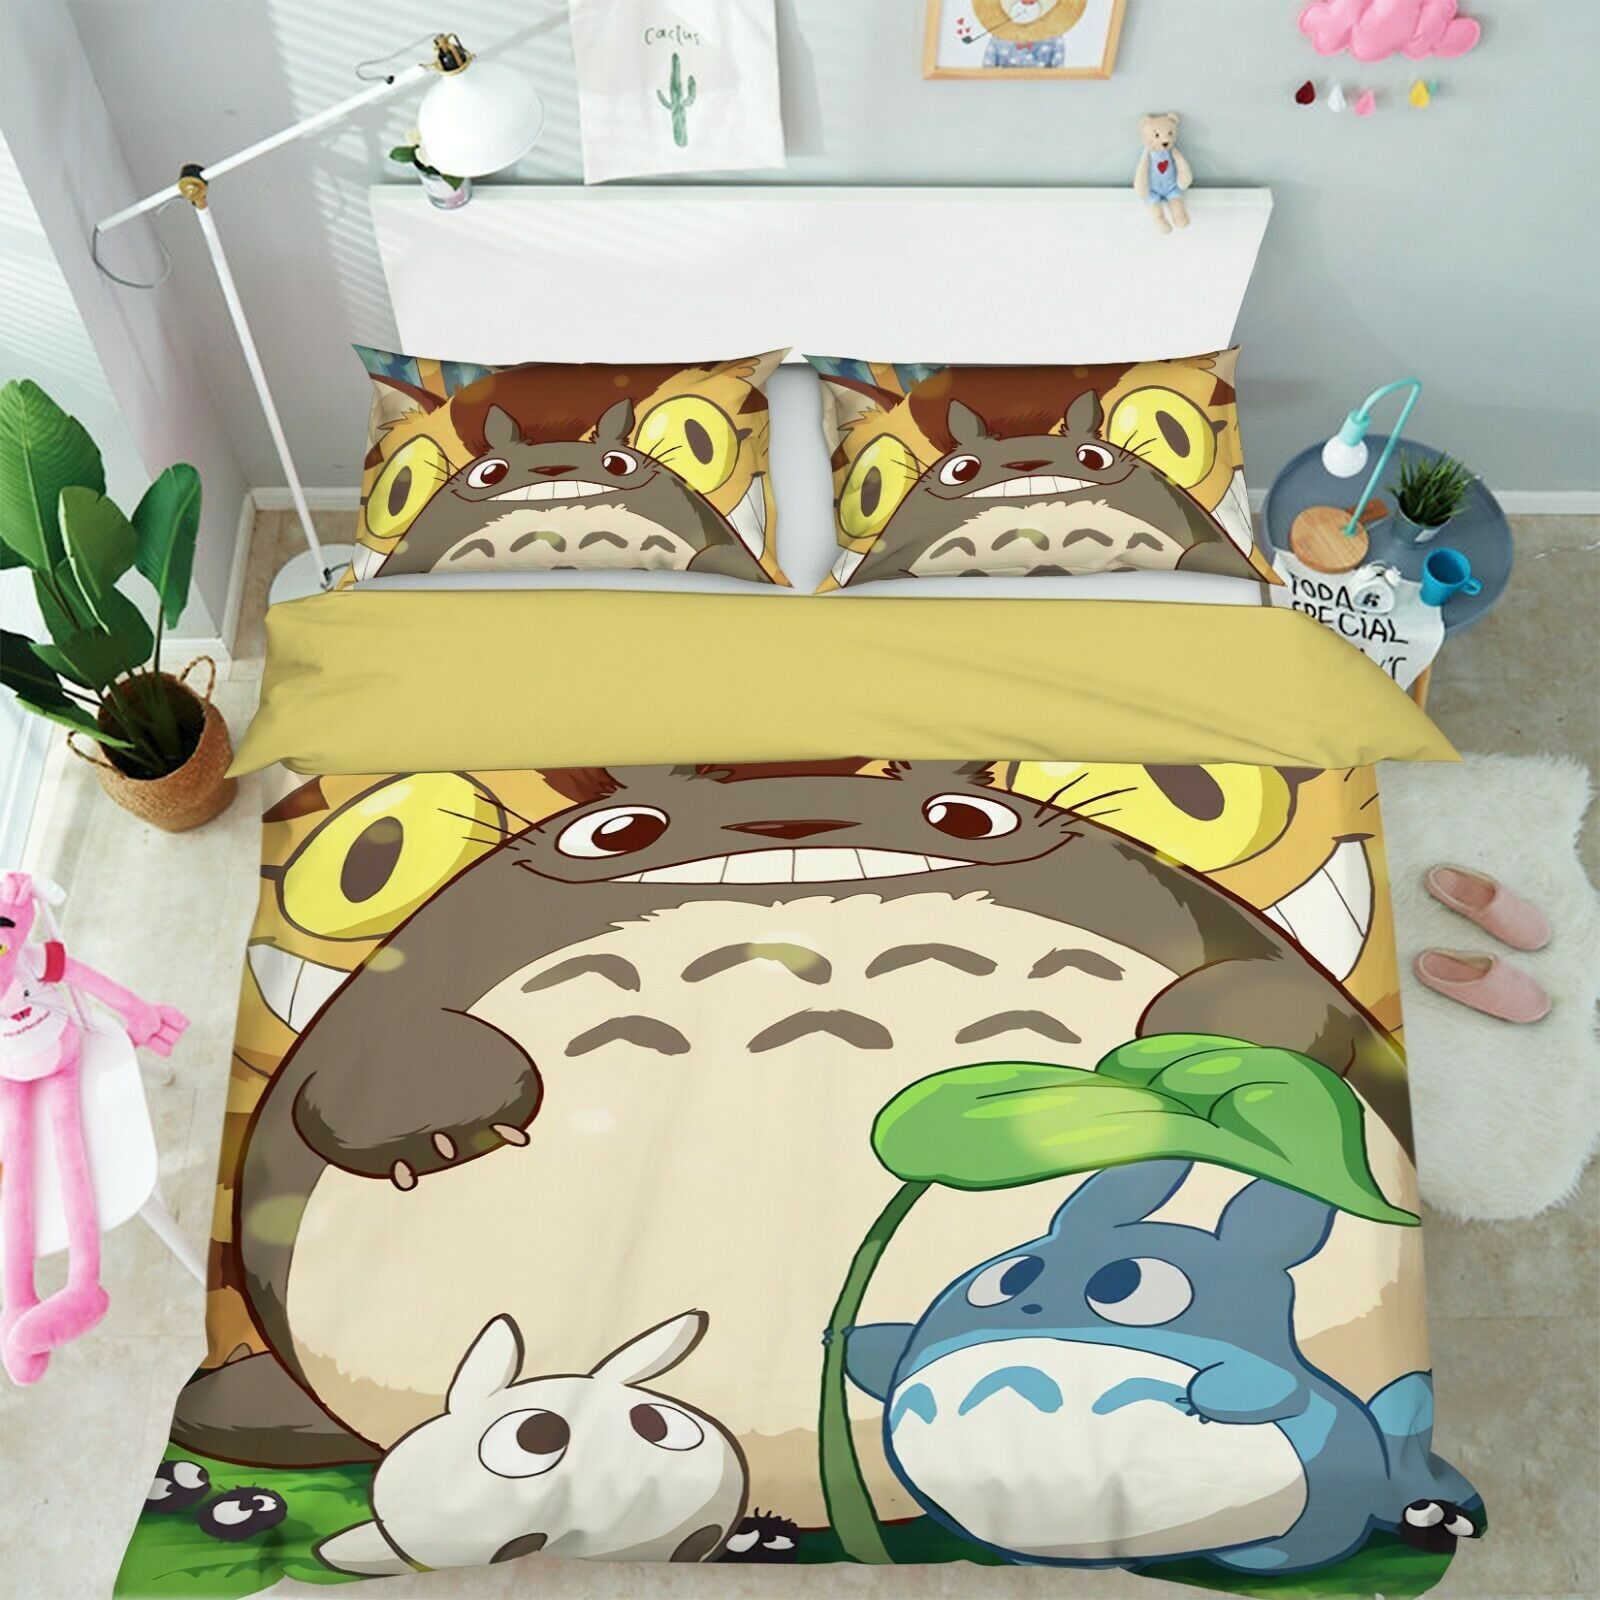 3D My Neighbor Totgold 9 Japan Anime Bed Pillowcases Quilt Duvet Cover Set Single